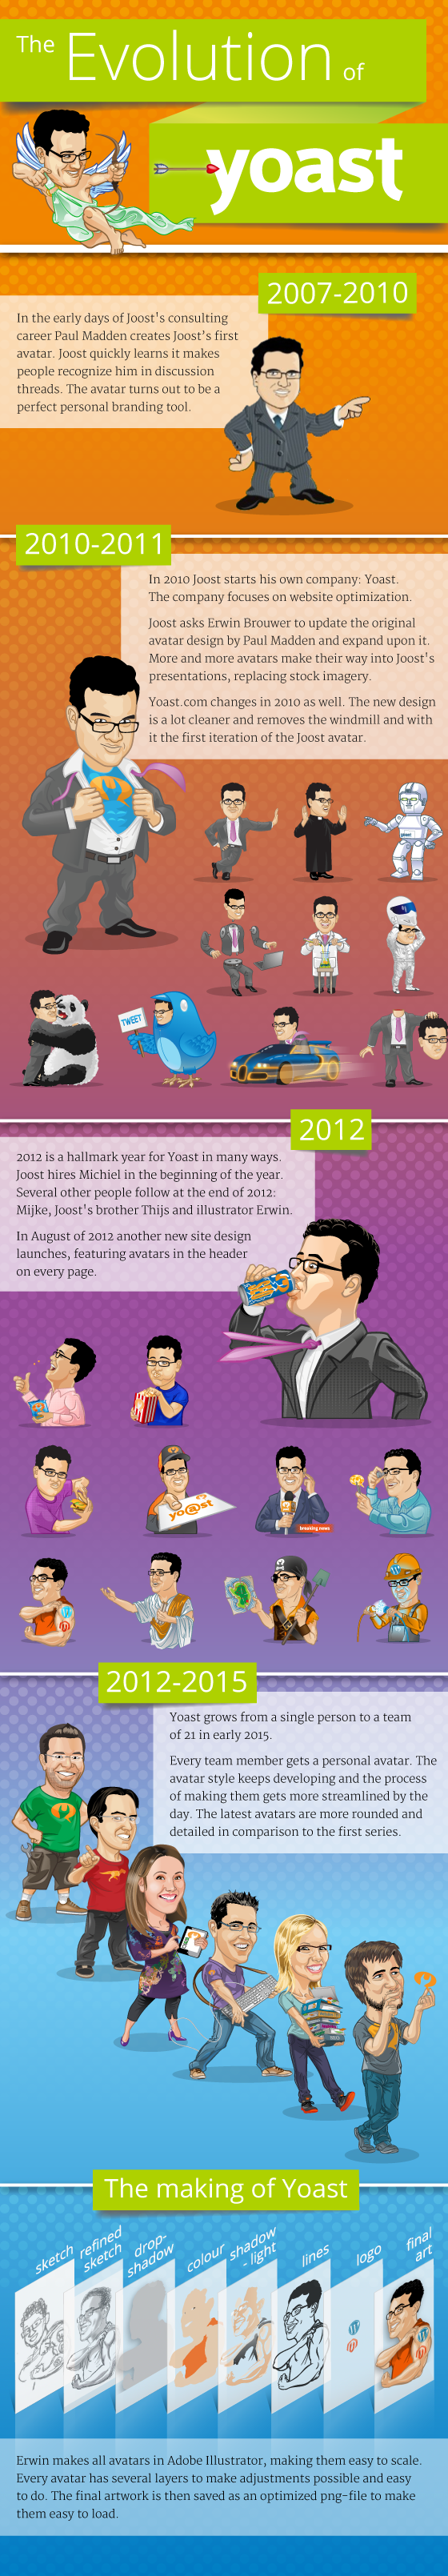 The evolution of Yoast Avatars in an infographic